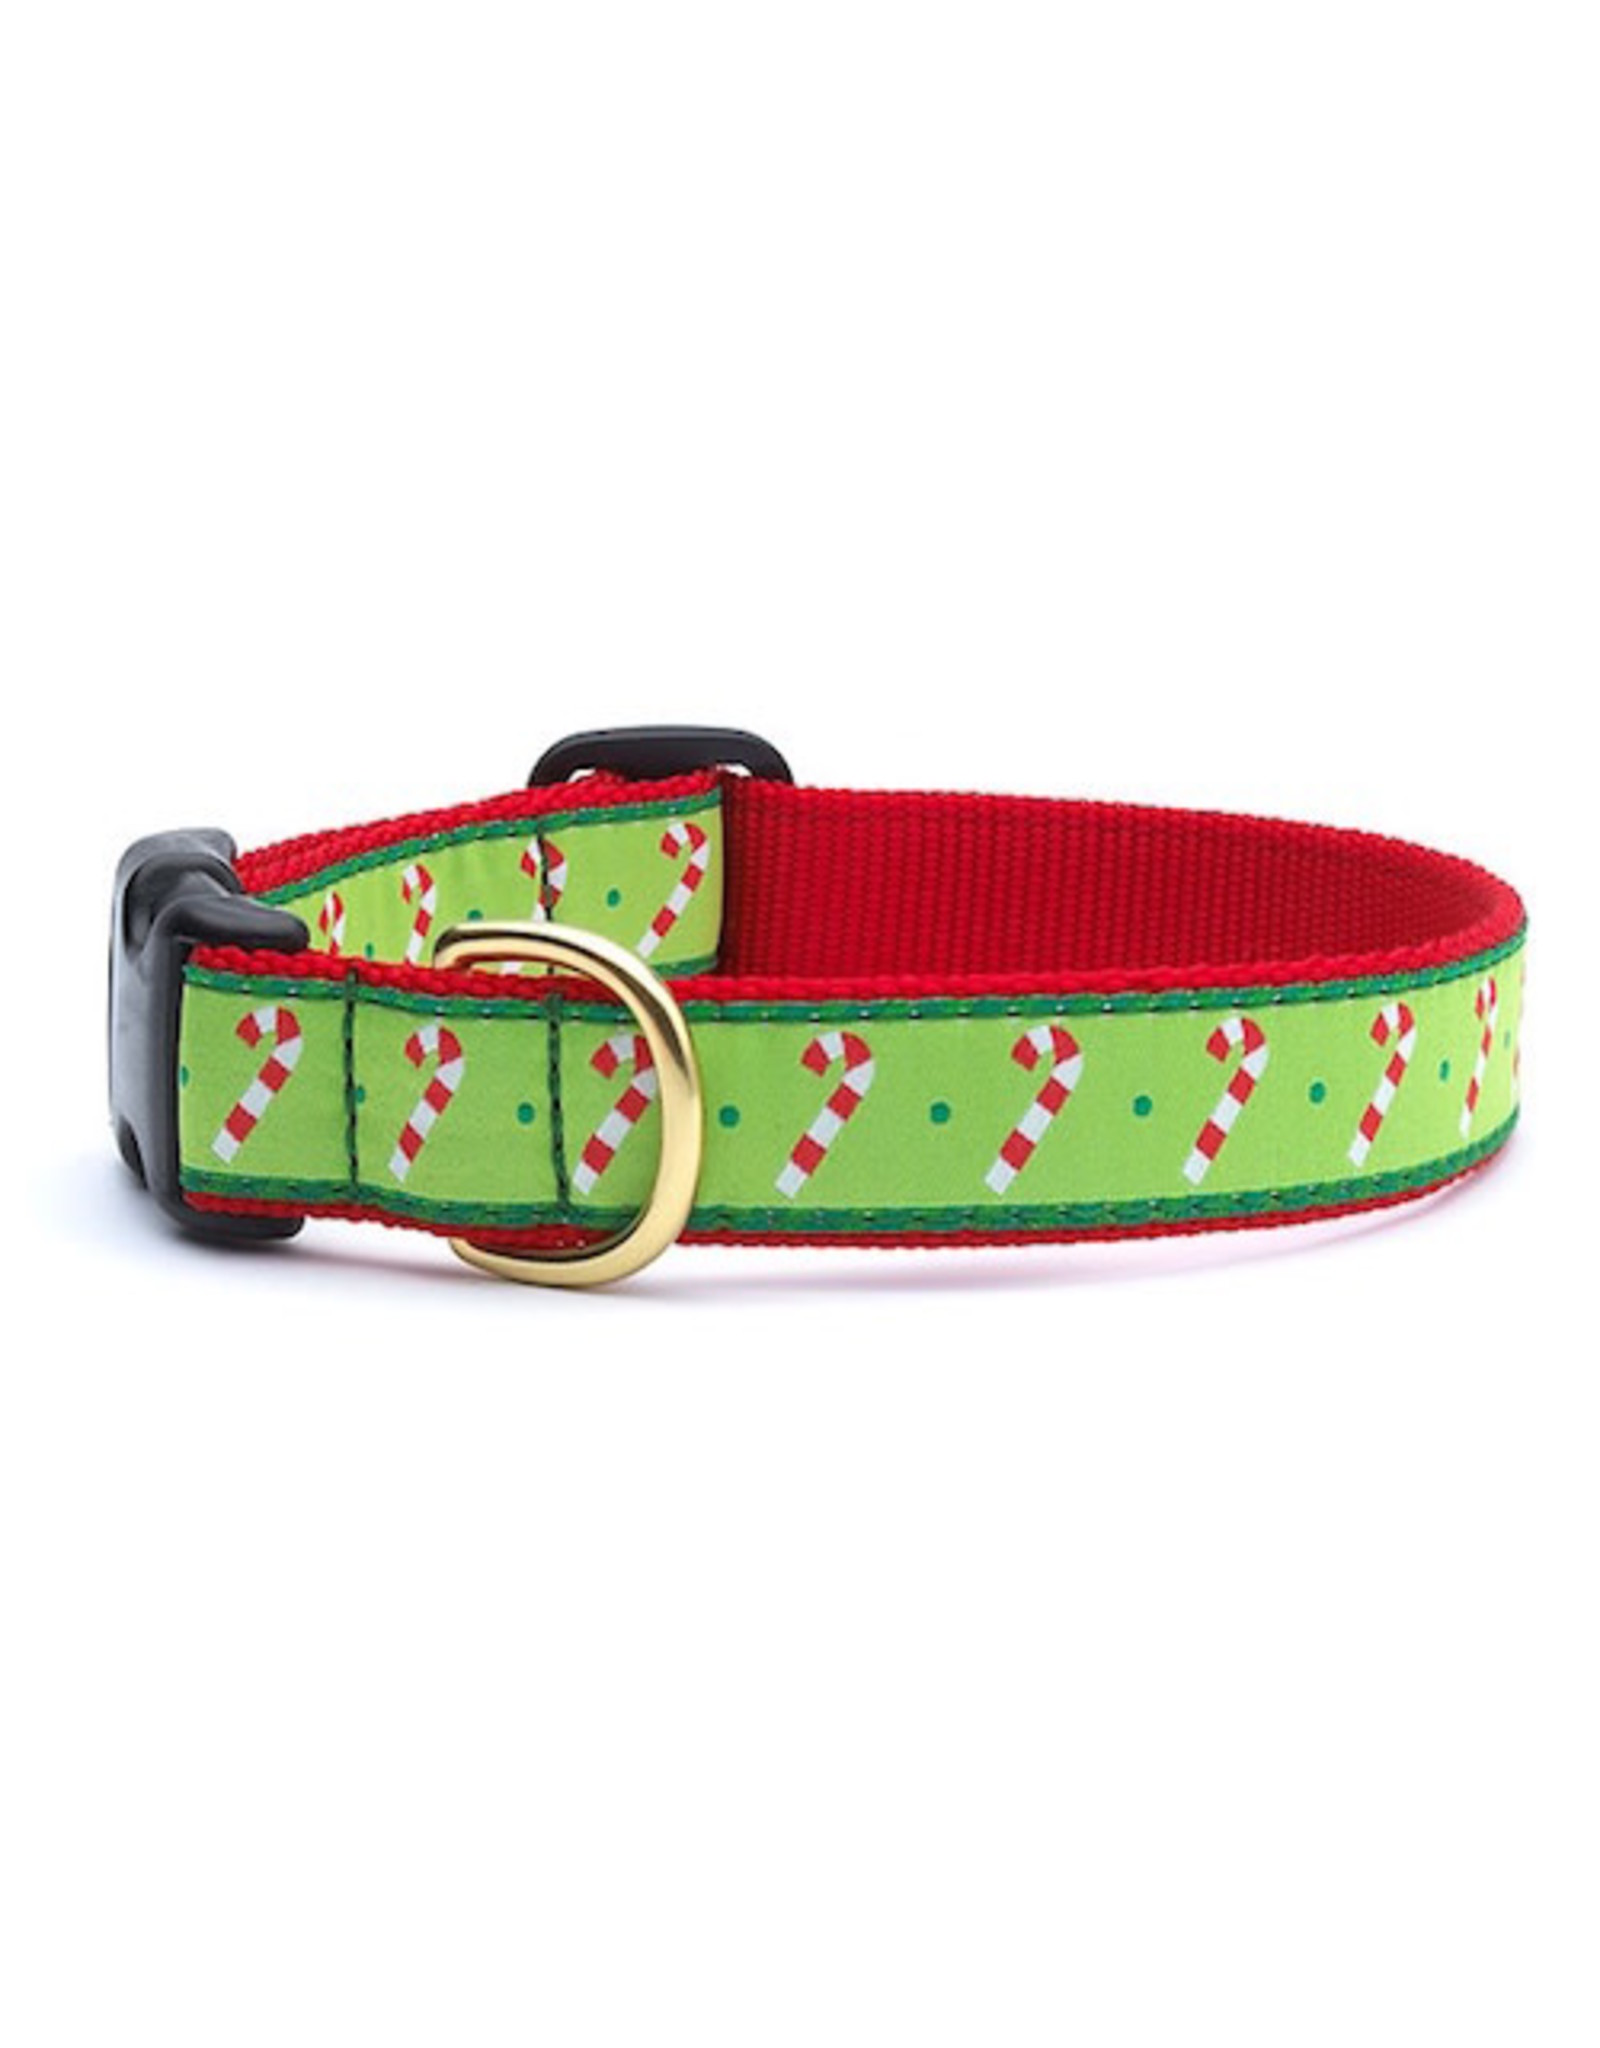 Up Country Candy Cane Collar: Wide, L